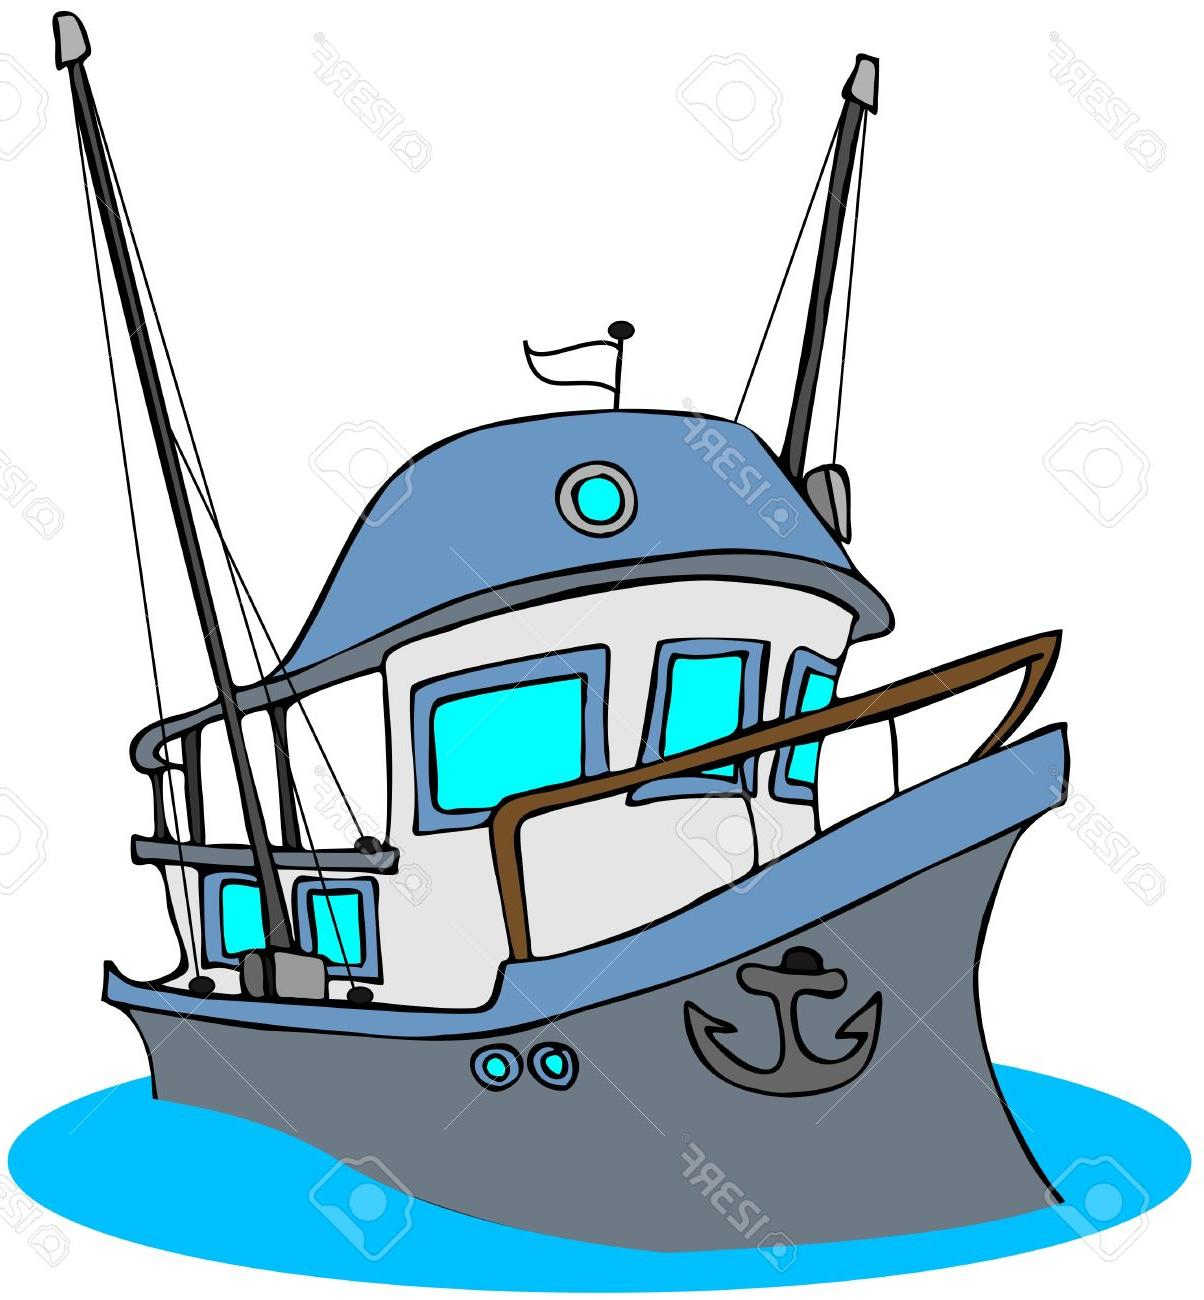 1204x1300 Top 10 Fishing Boat Clipart Cartoon Cdr